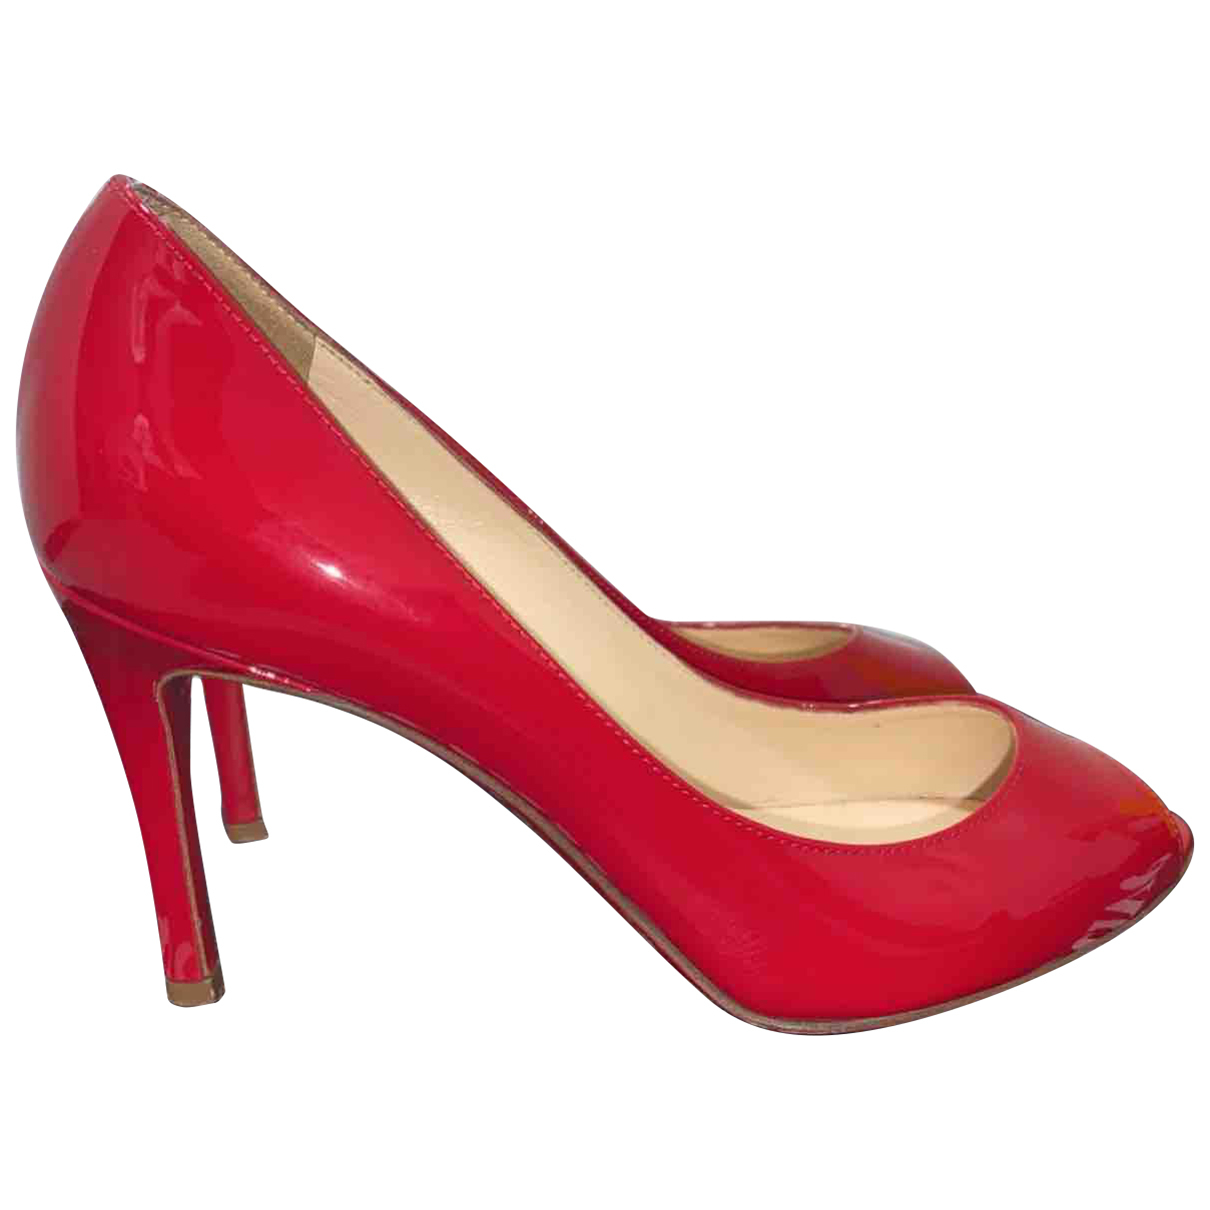 Christian Louboutin N Red Leather Heels for Women 36.5 EU